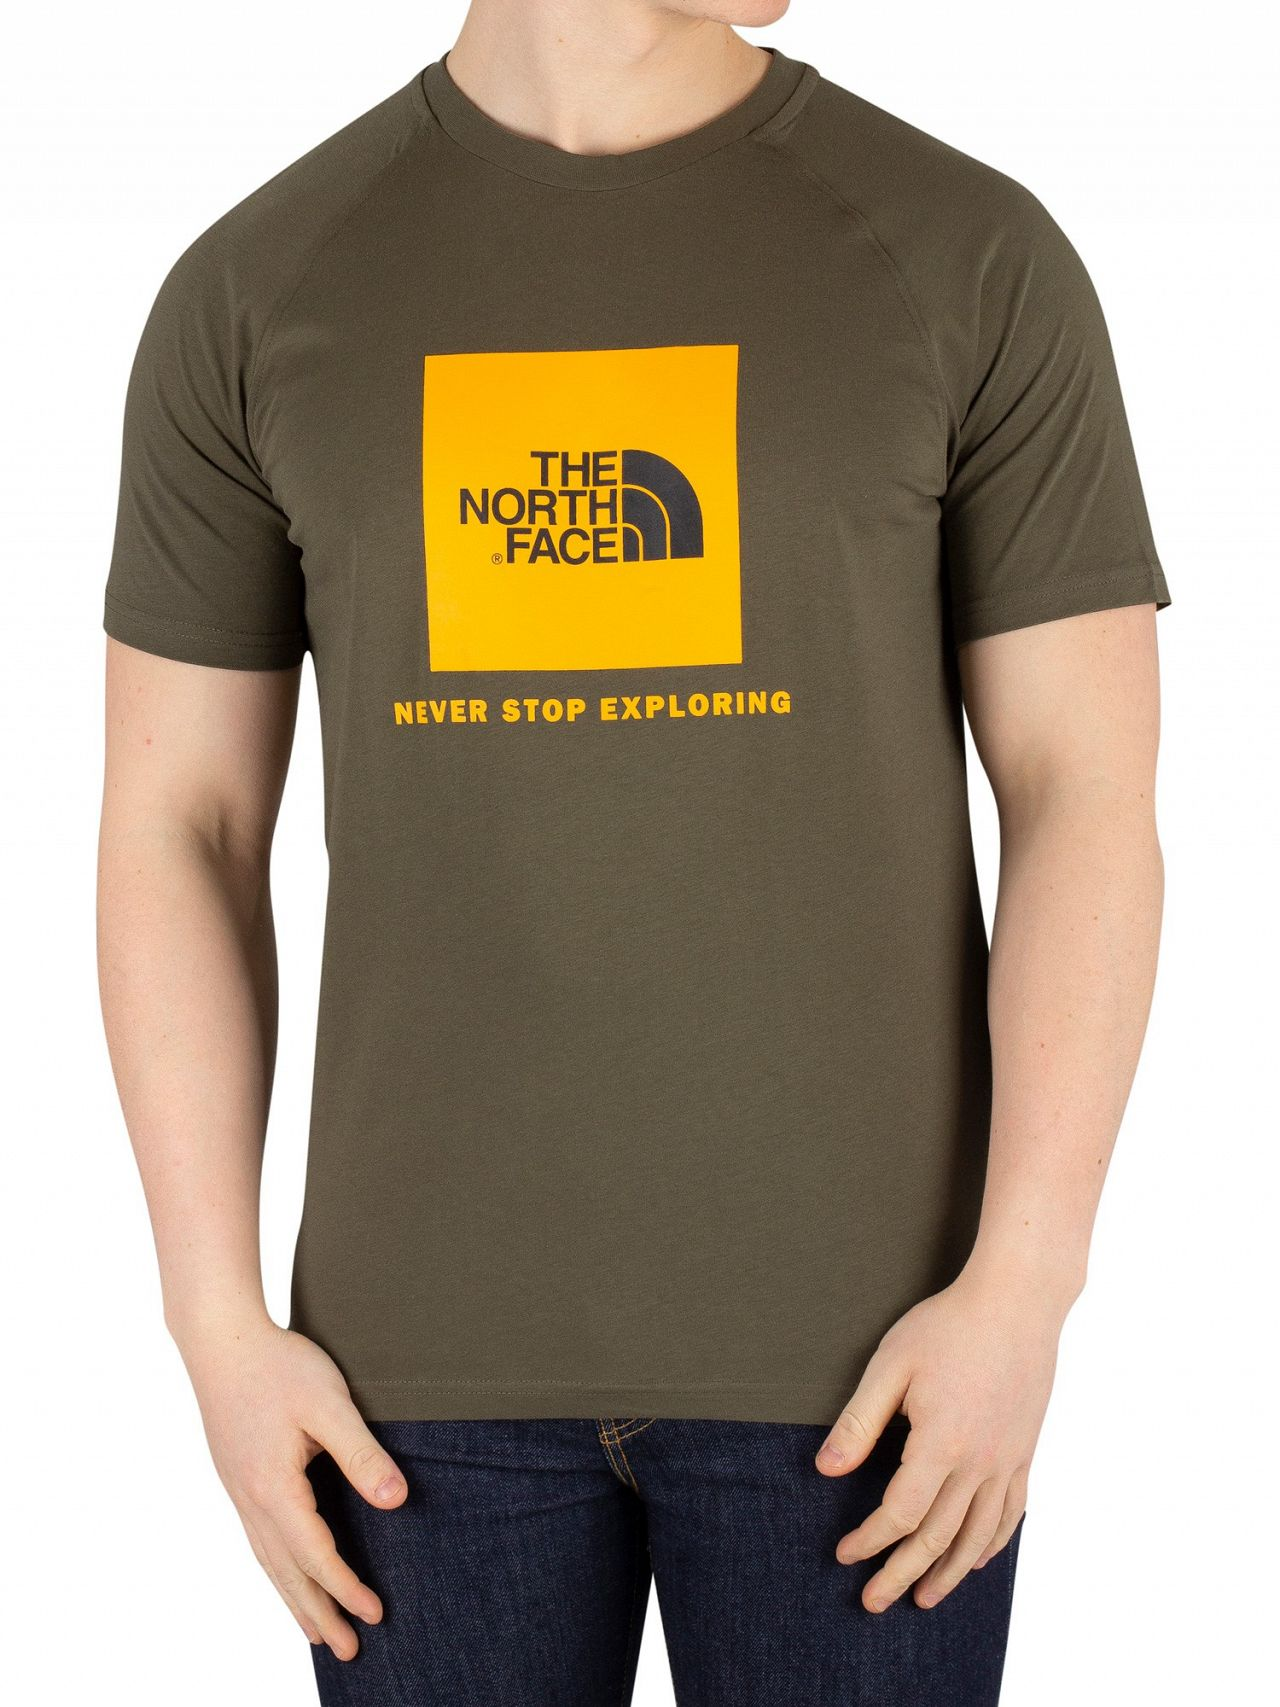 67e870f16 The North Face New Taupe Green Raglan Redbox T-Shirt